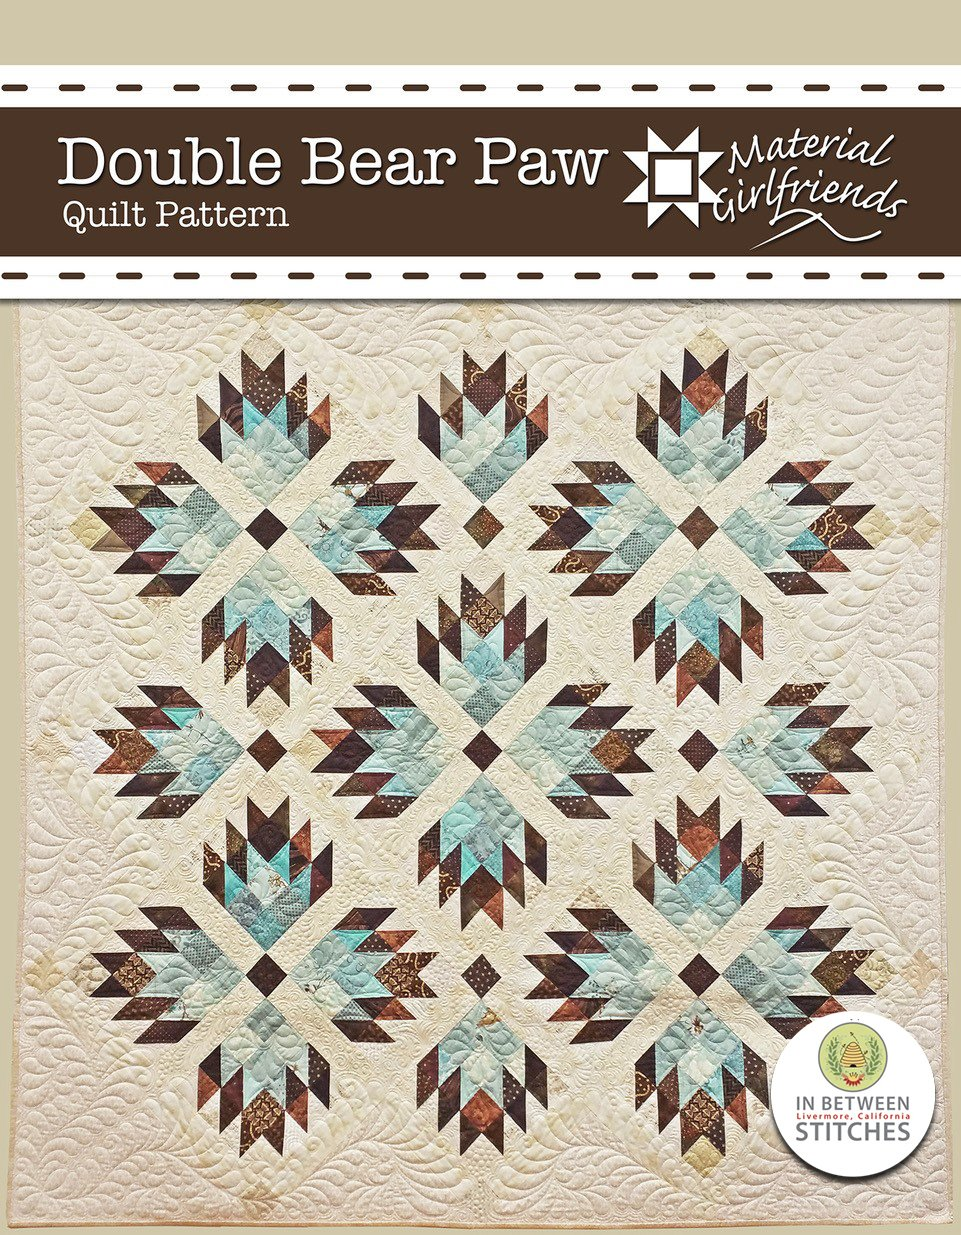 Double Bear Paw